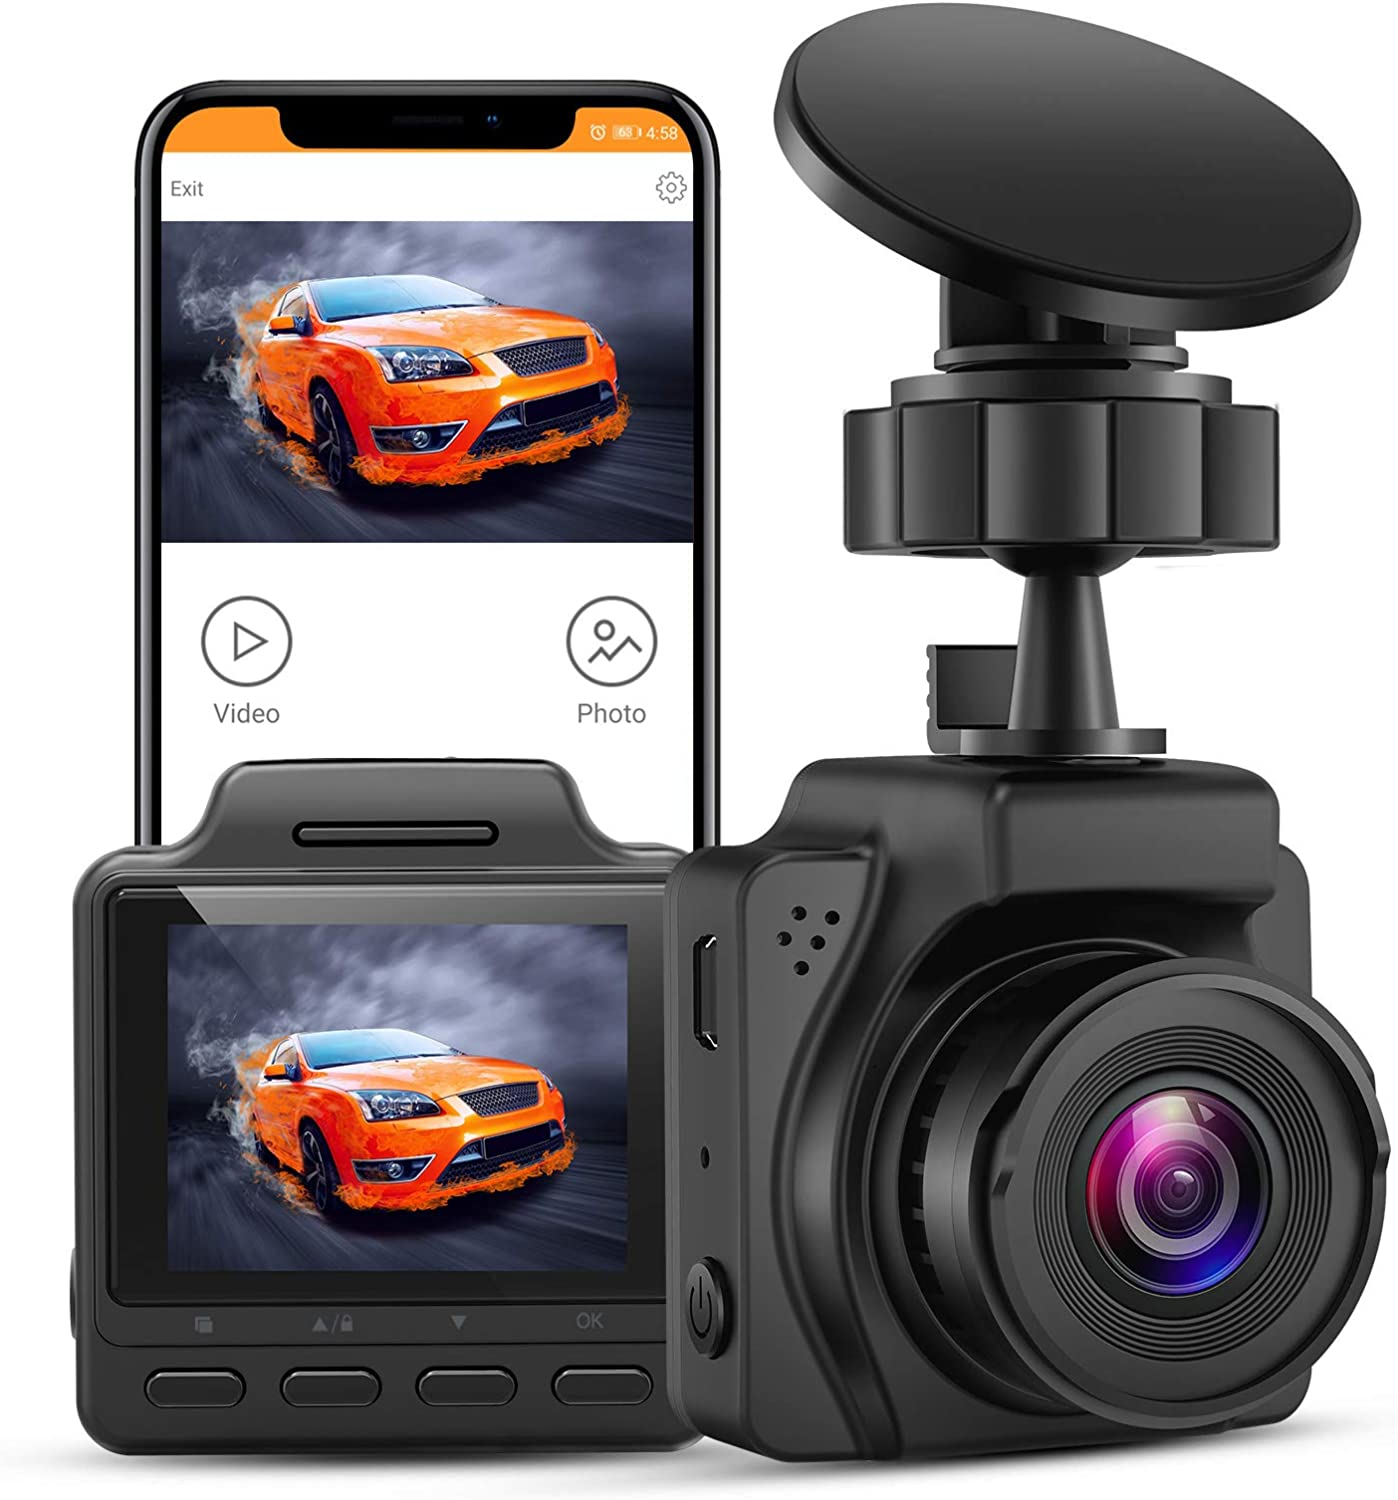 Small Dashcam for Cars 2K UHD 30FPS Ranking TOP20 4K Outlet SALE B2K Dashbo Blueskysea Max